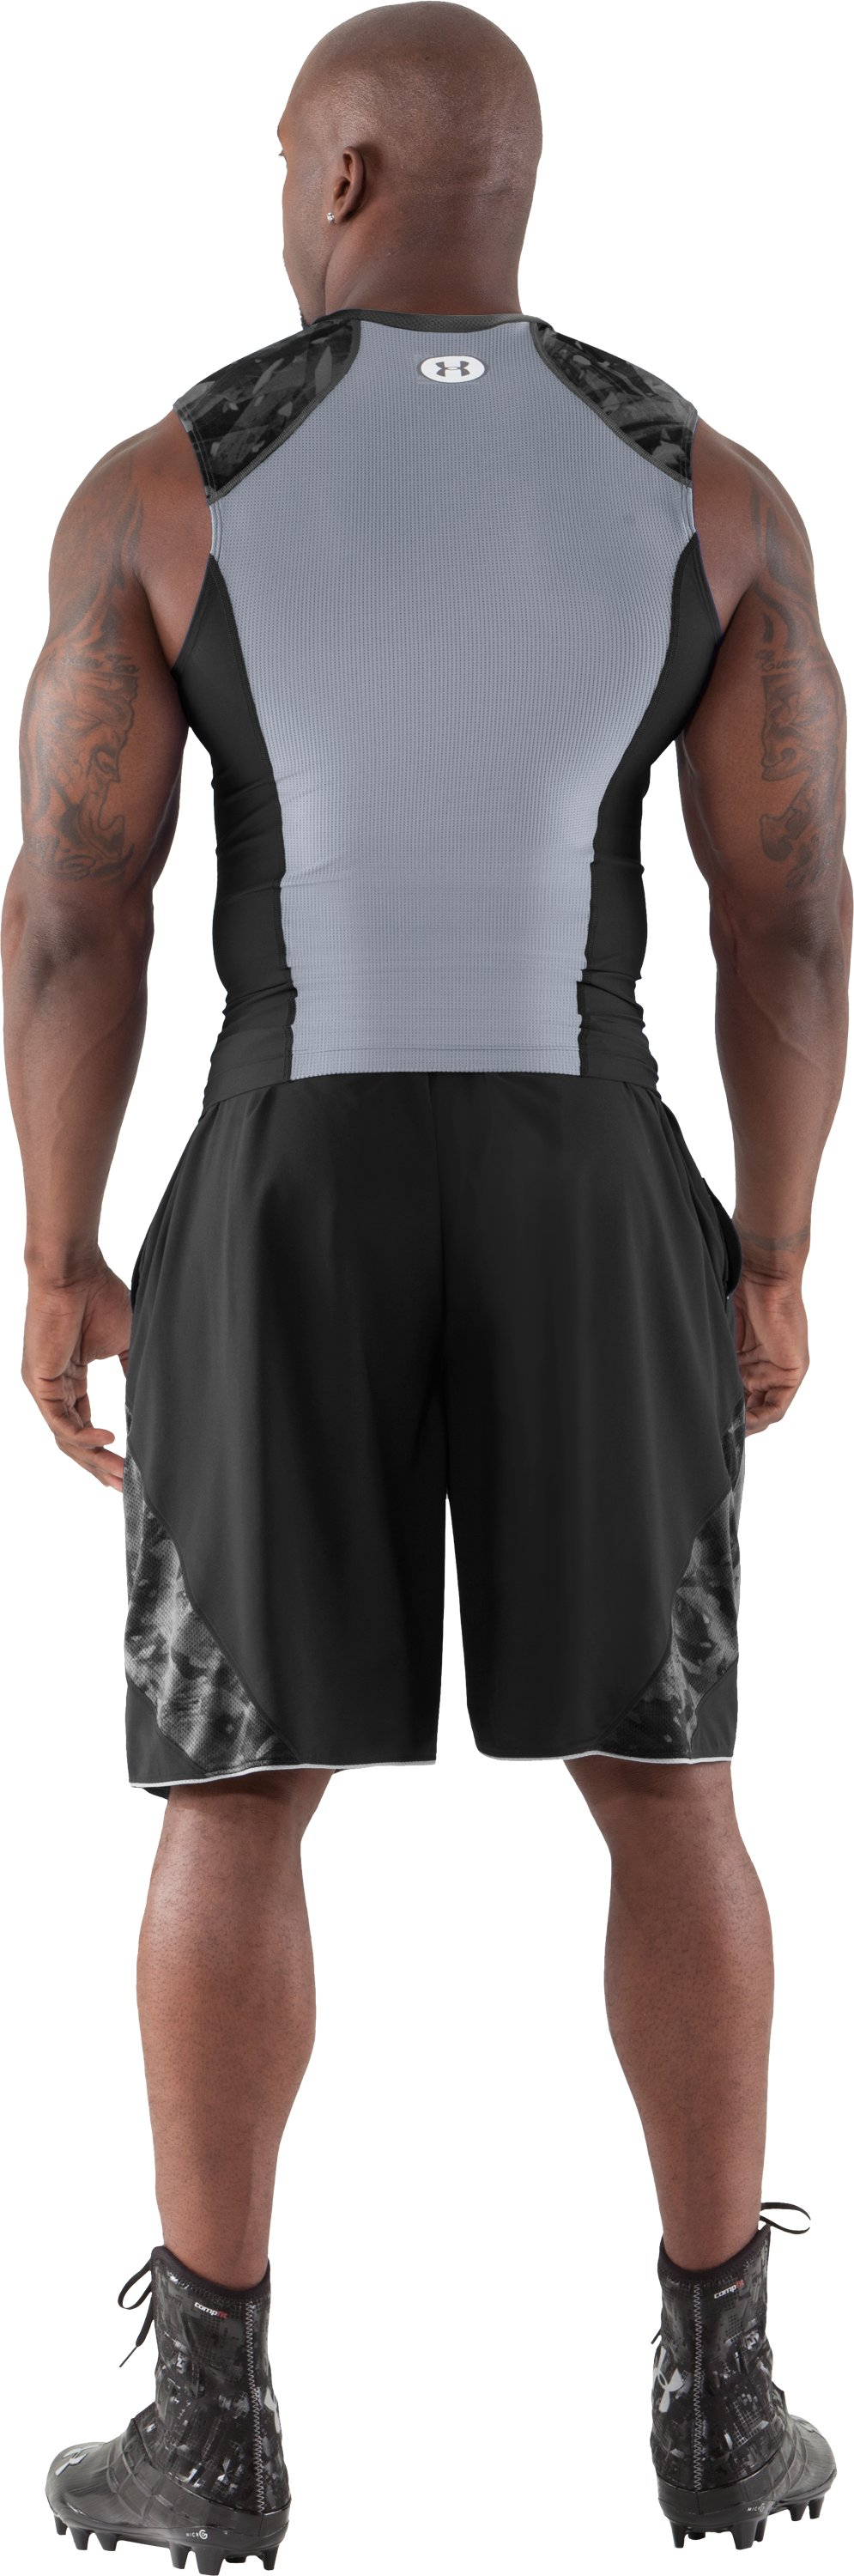 Men's NFL Combine Authentic Compression Sleeveless, Black , Back